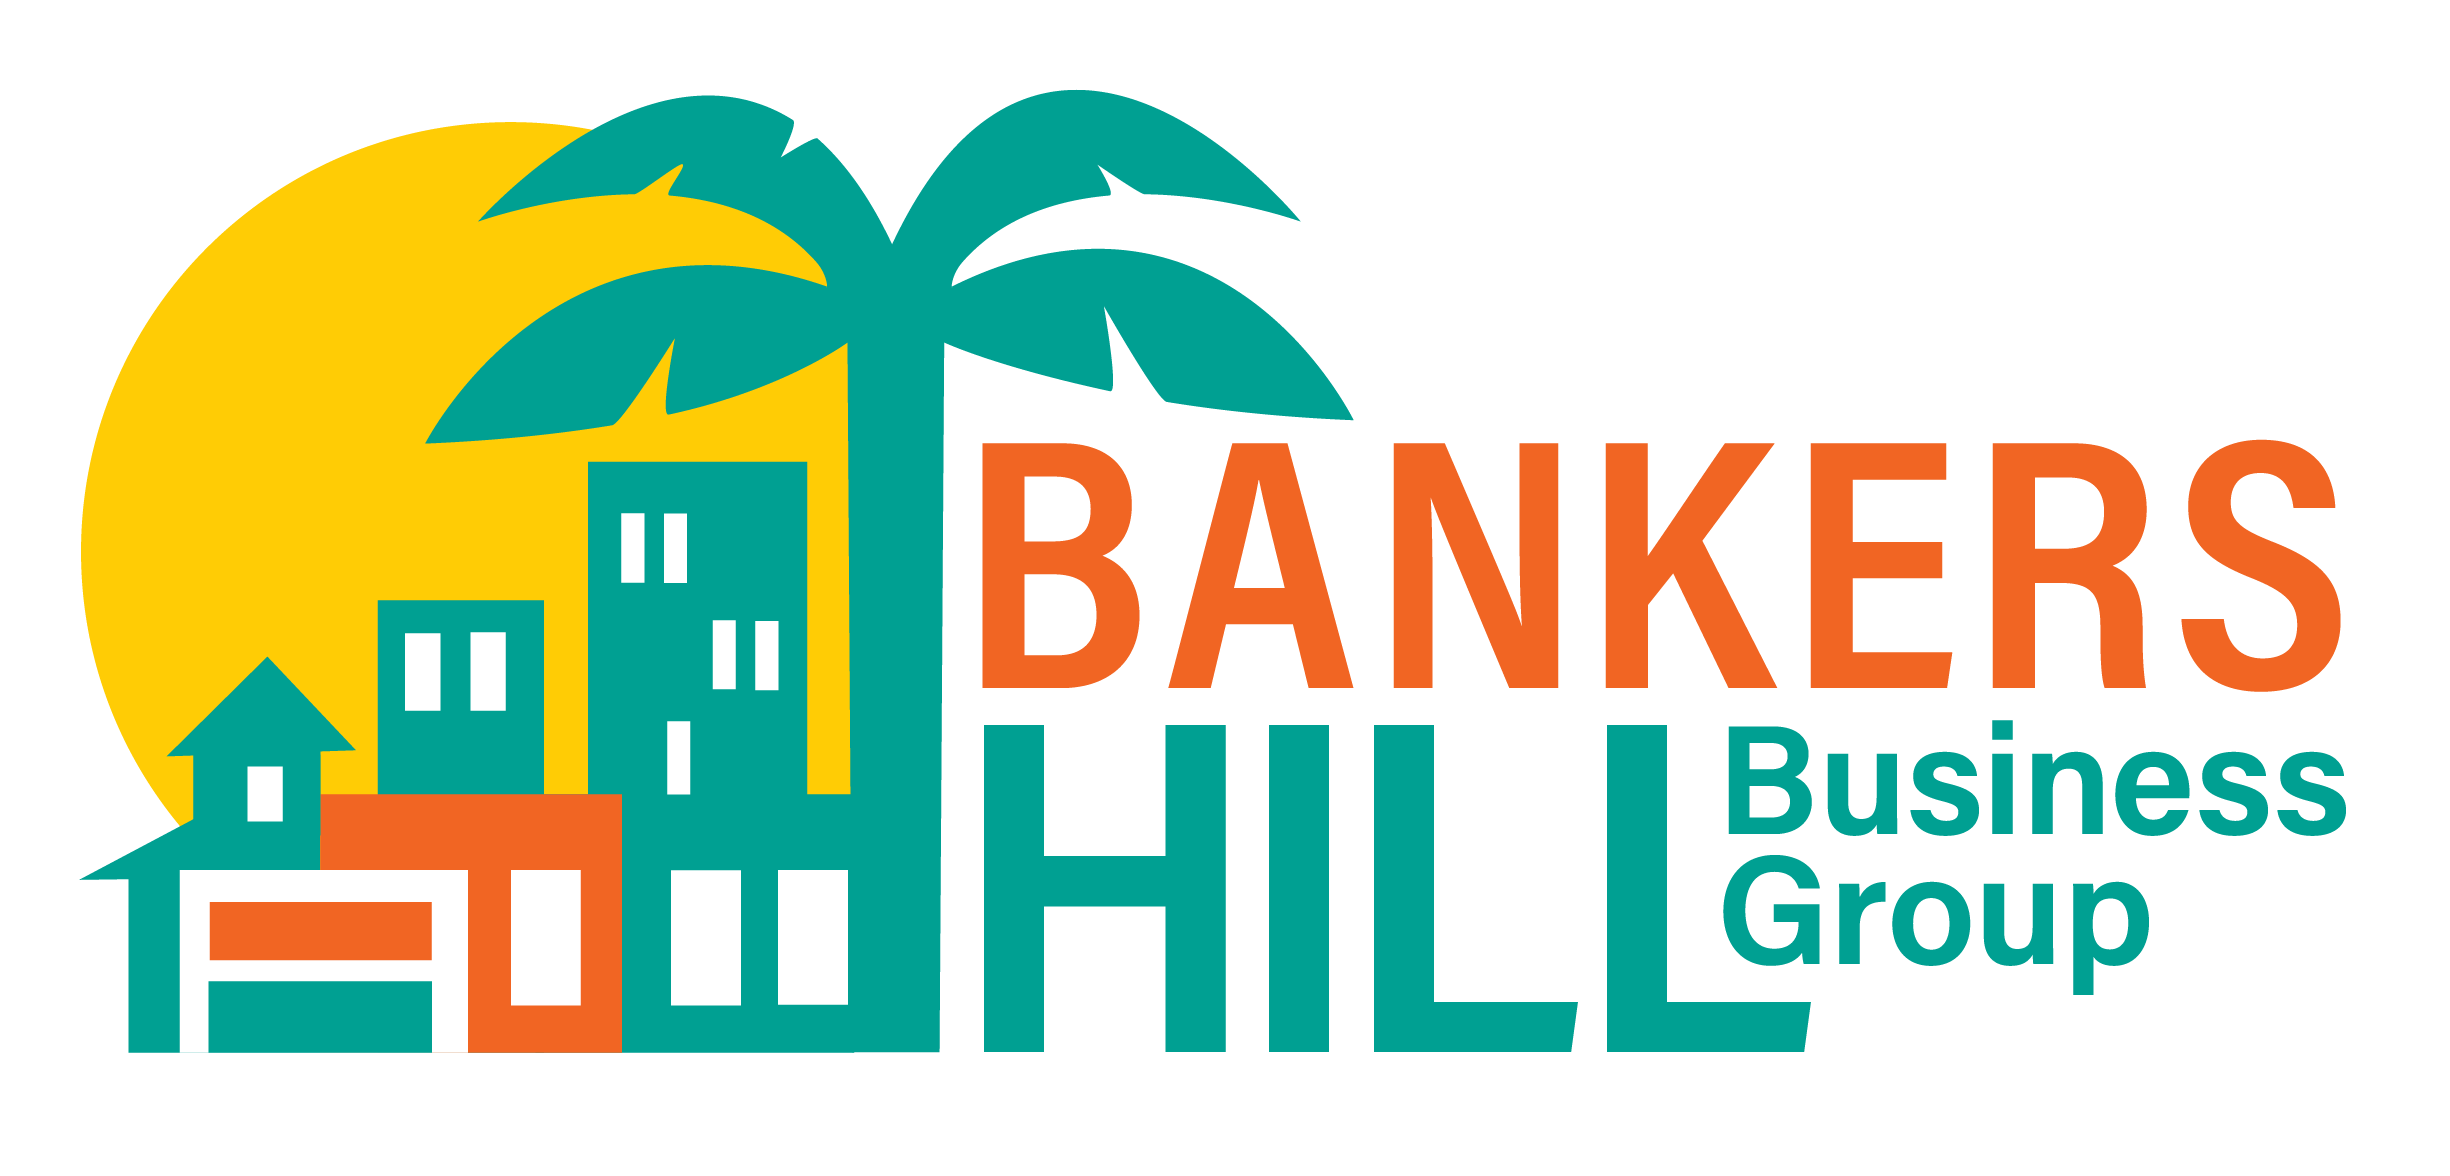 Bankers Hill Business Group